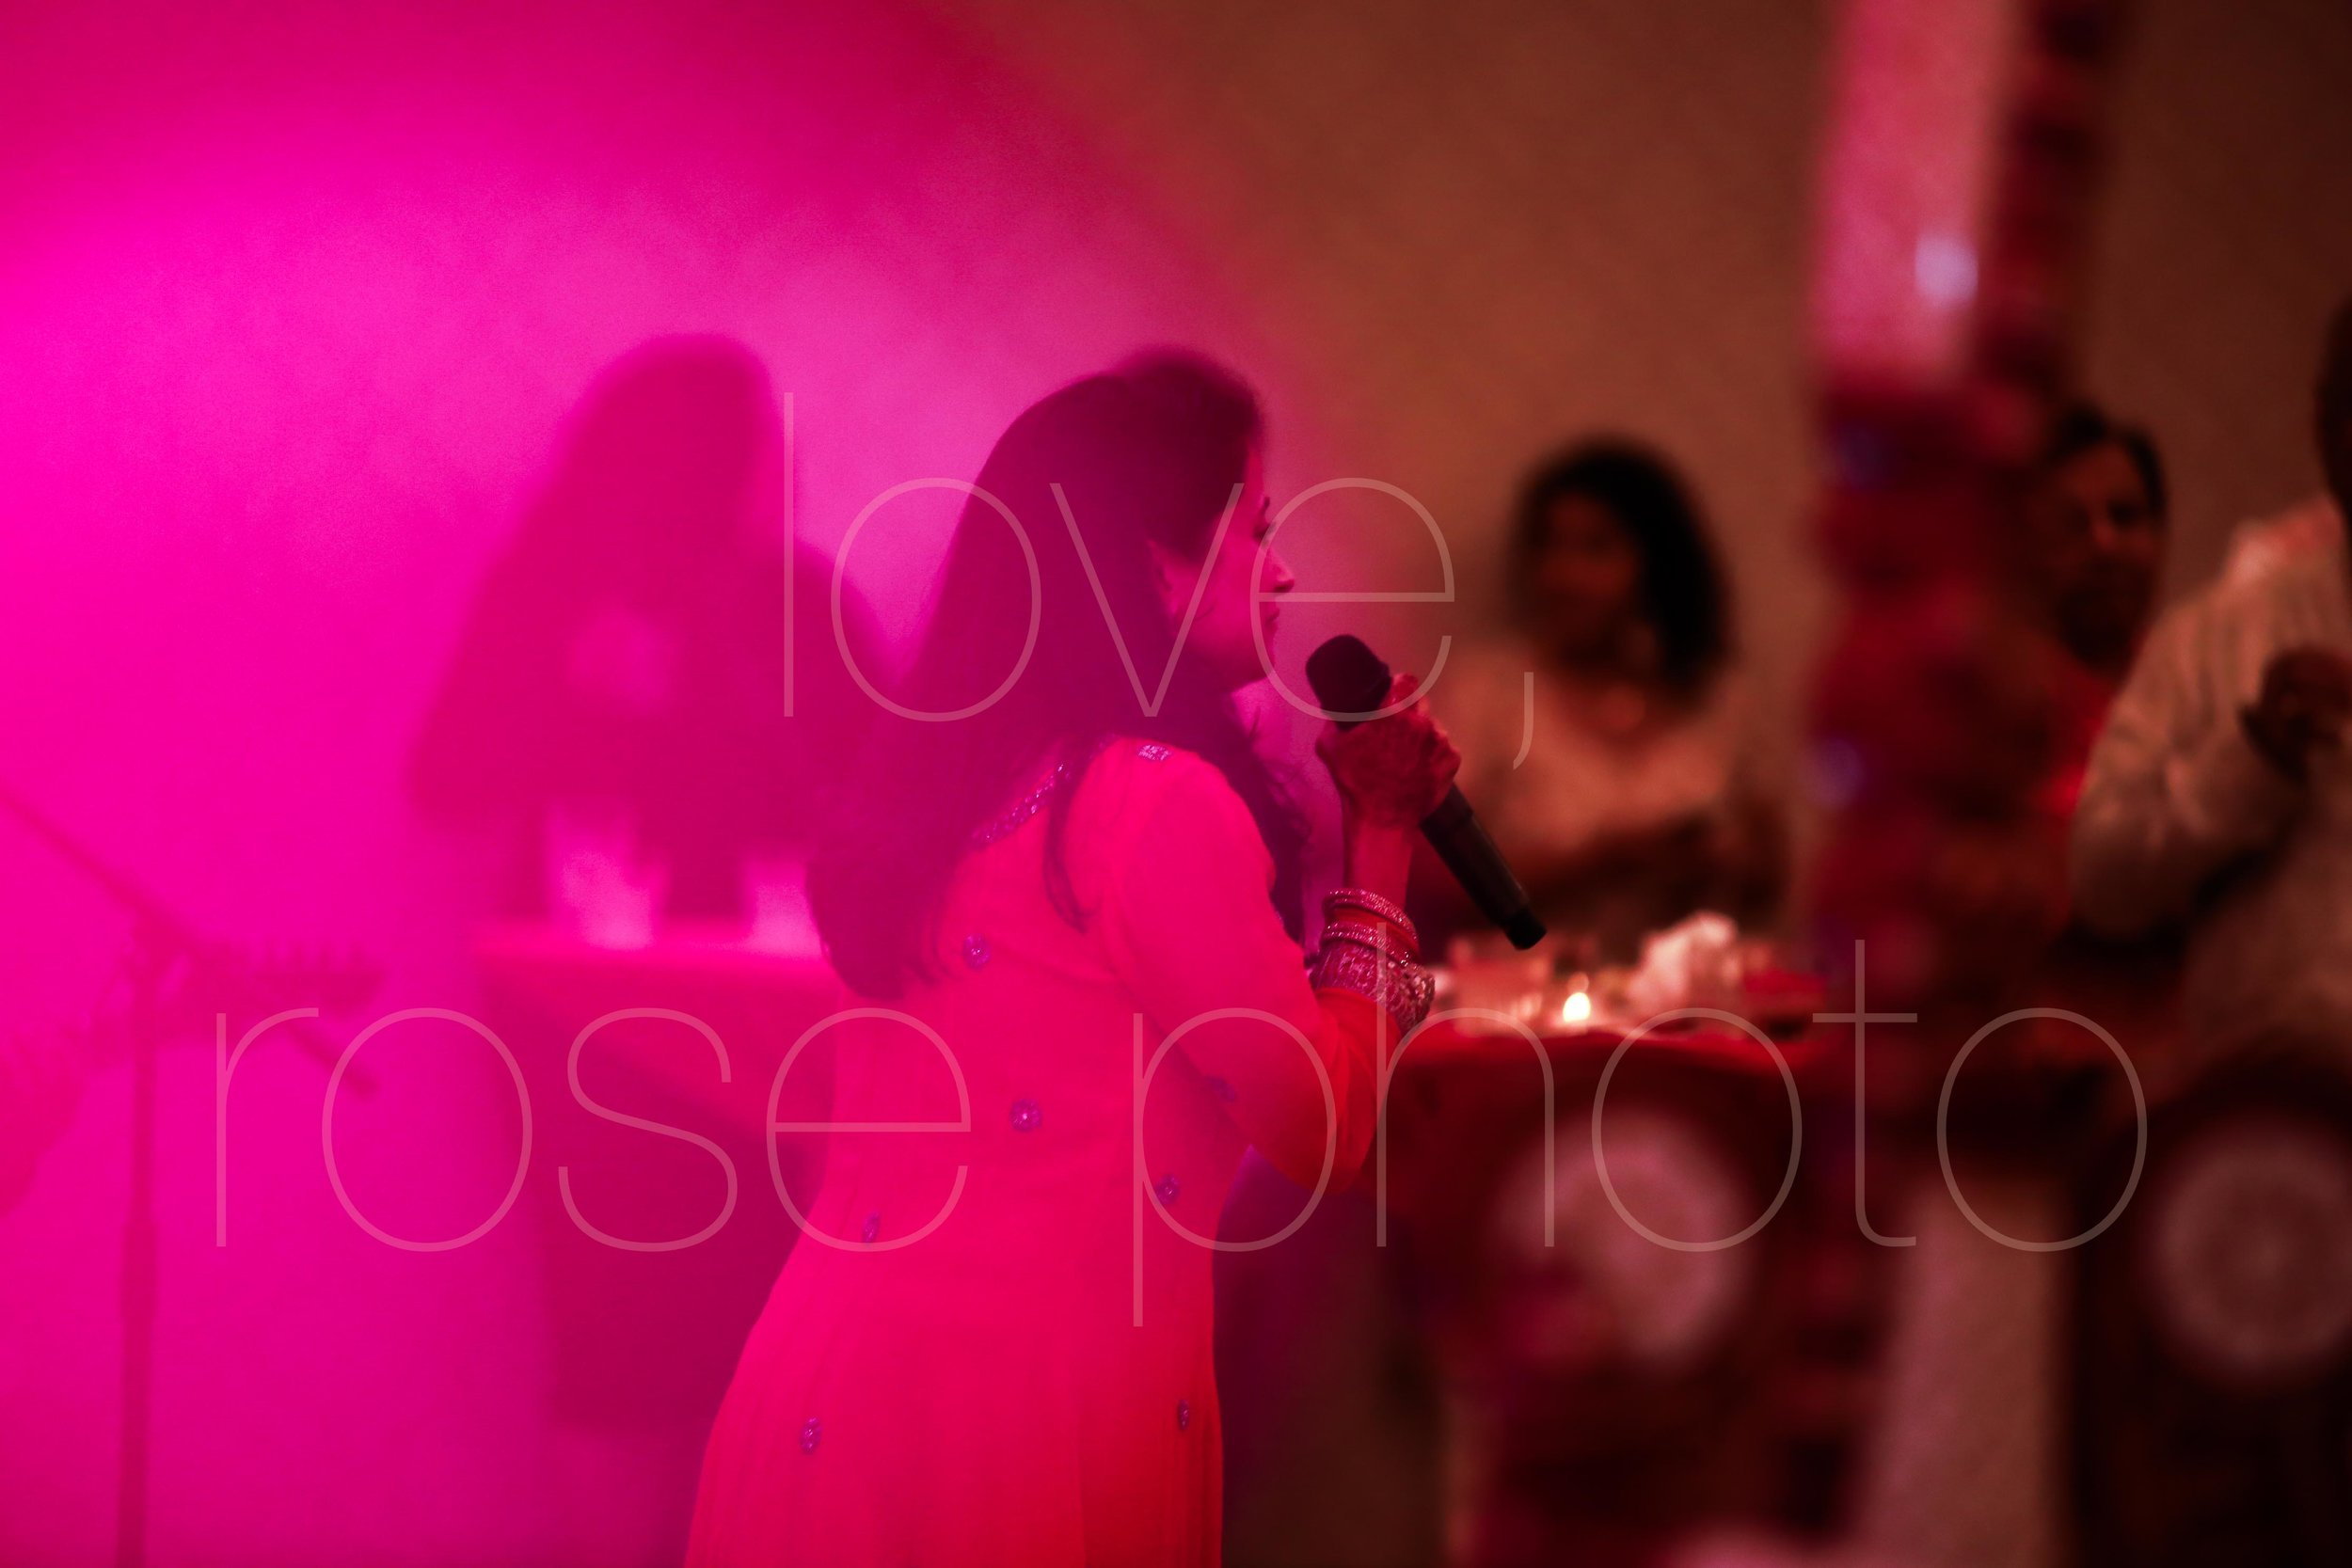 best chicago indian wedding photographer rose photo video collective-32.jpg